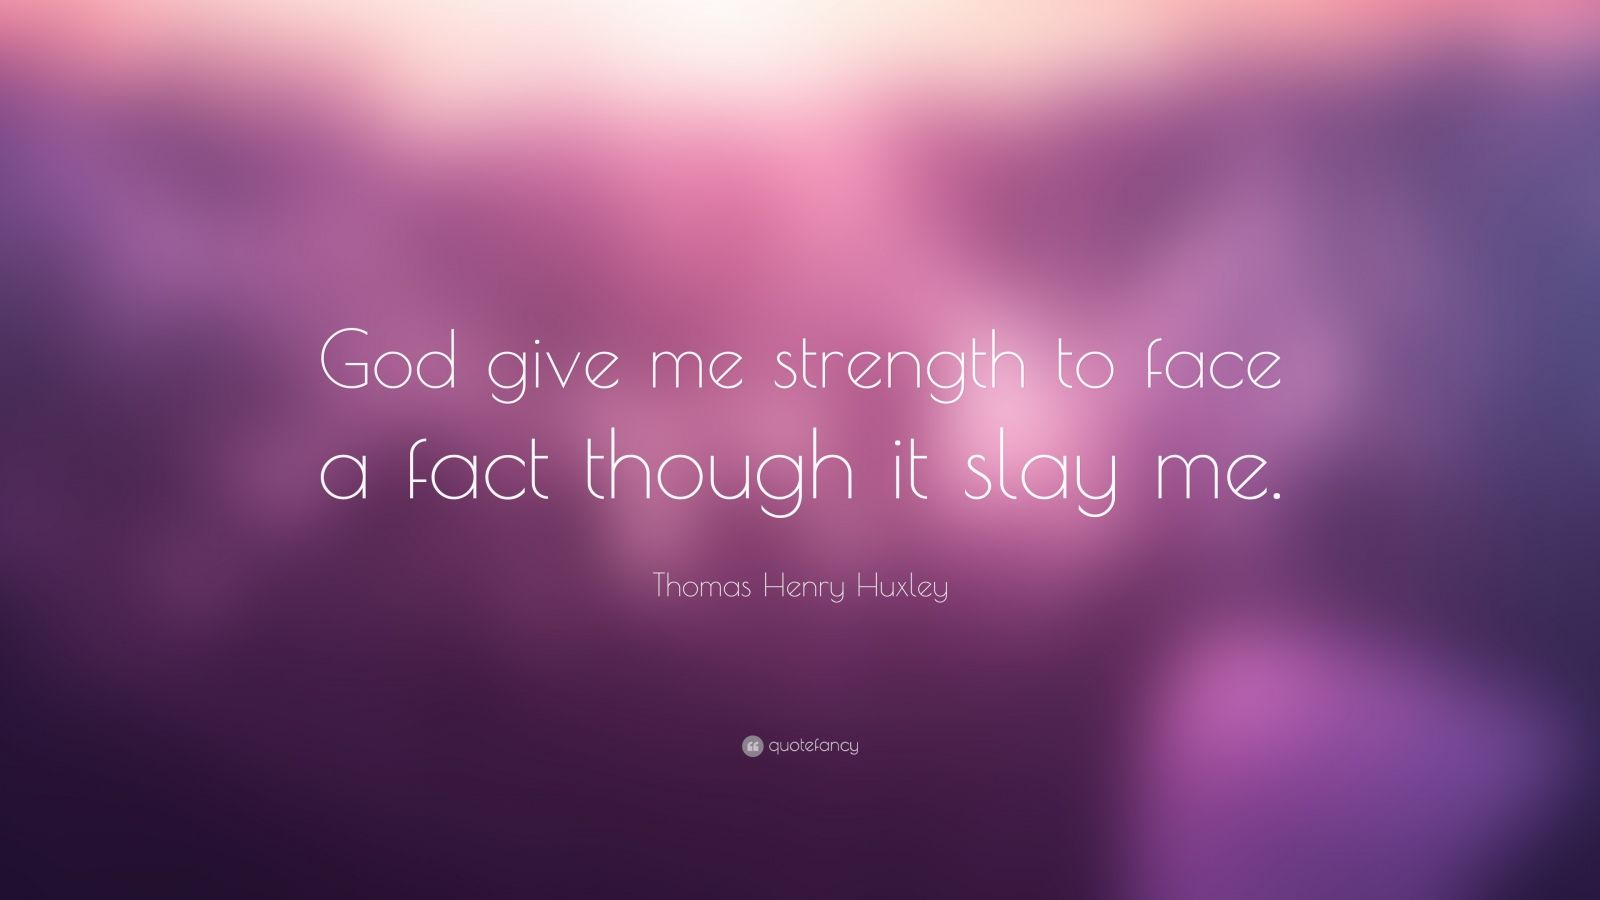 """Thomas Henry Huxley Quote: """"God give me strength to face a fact though it slay me."""""""